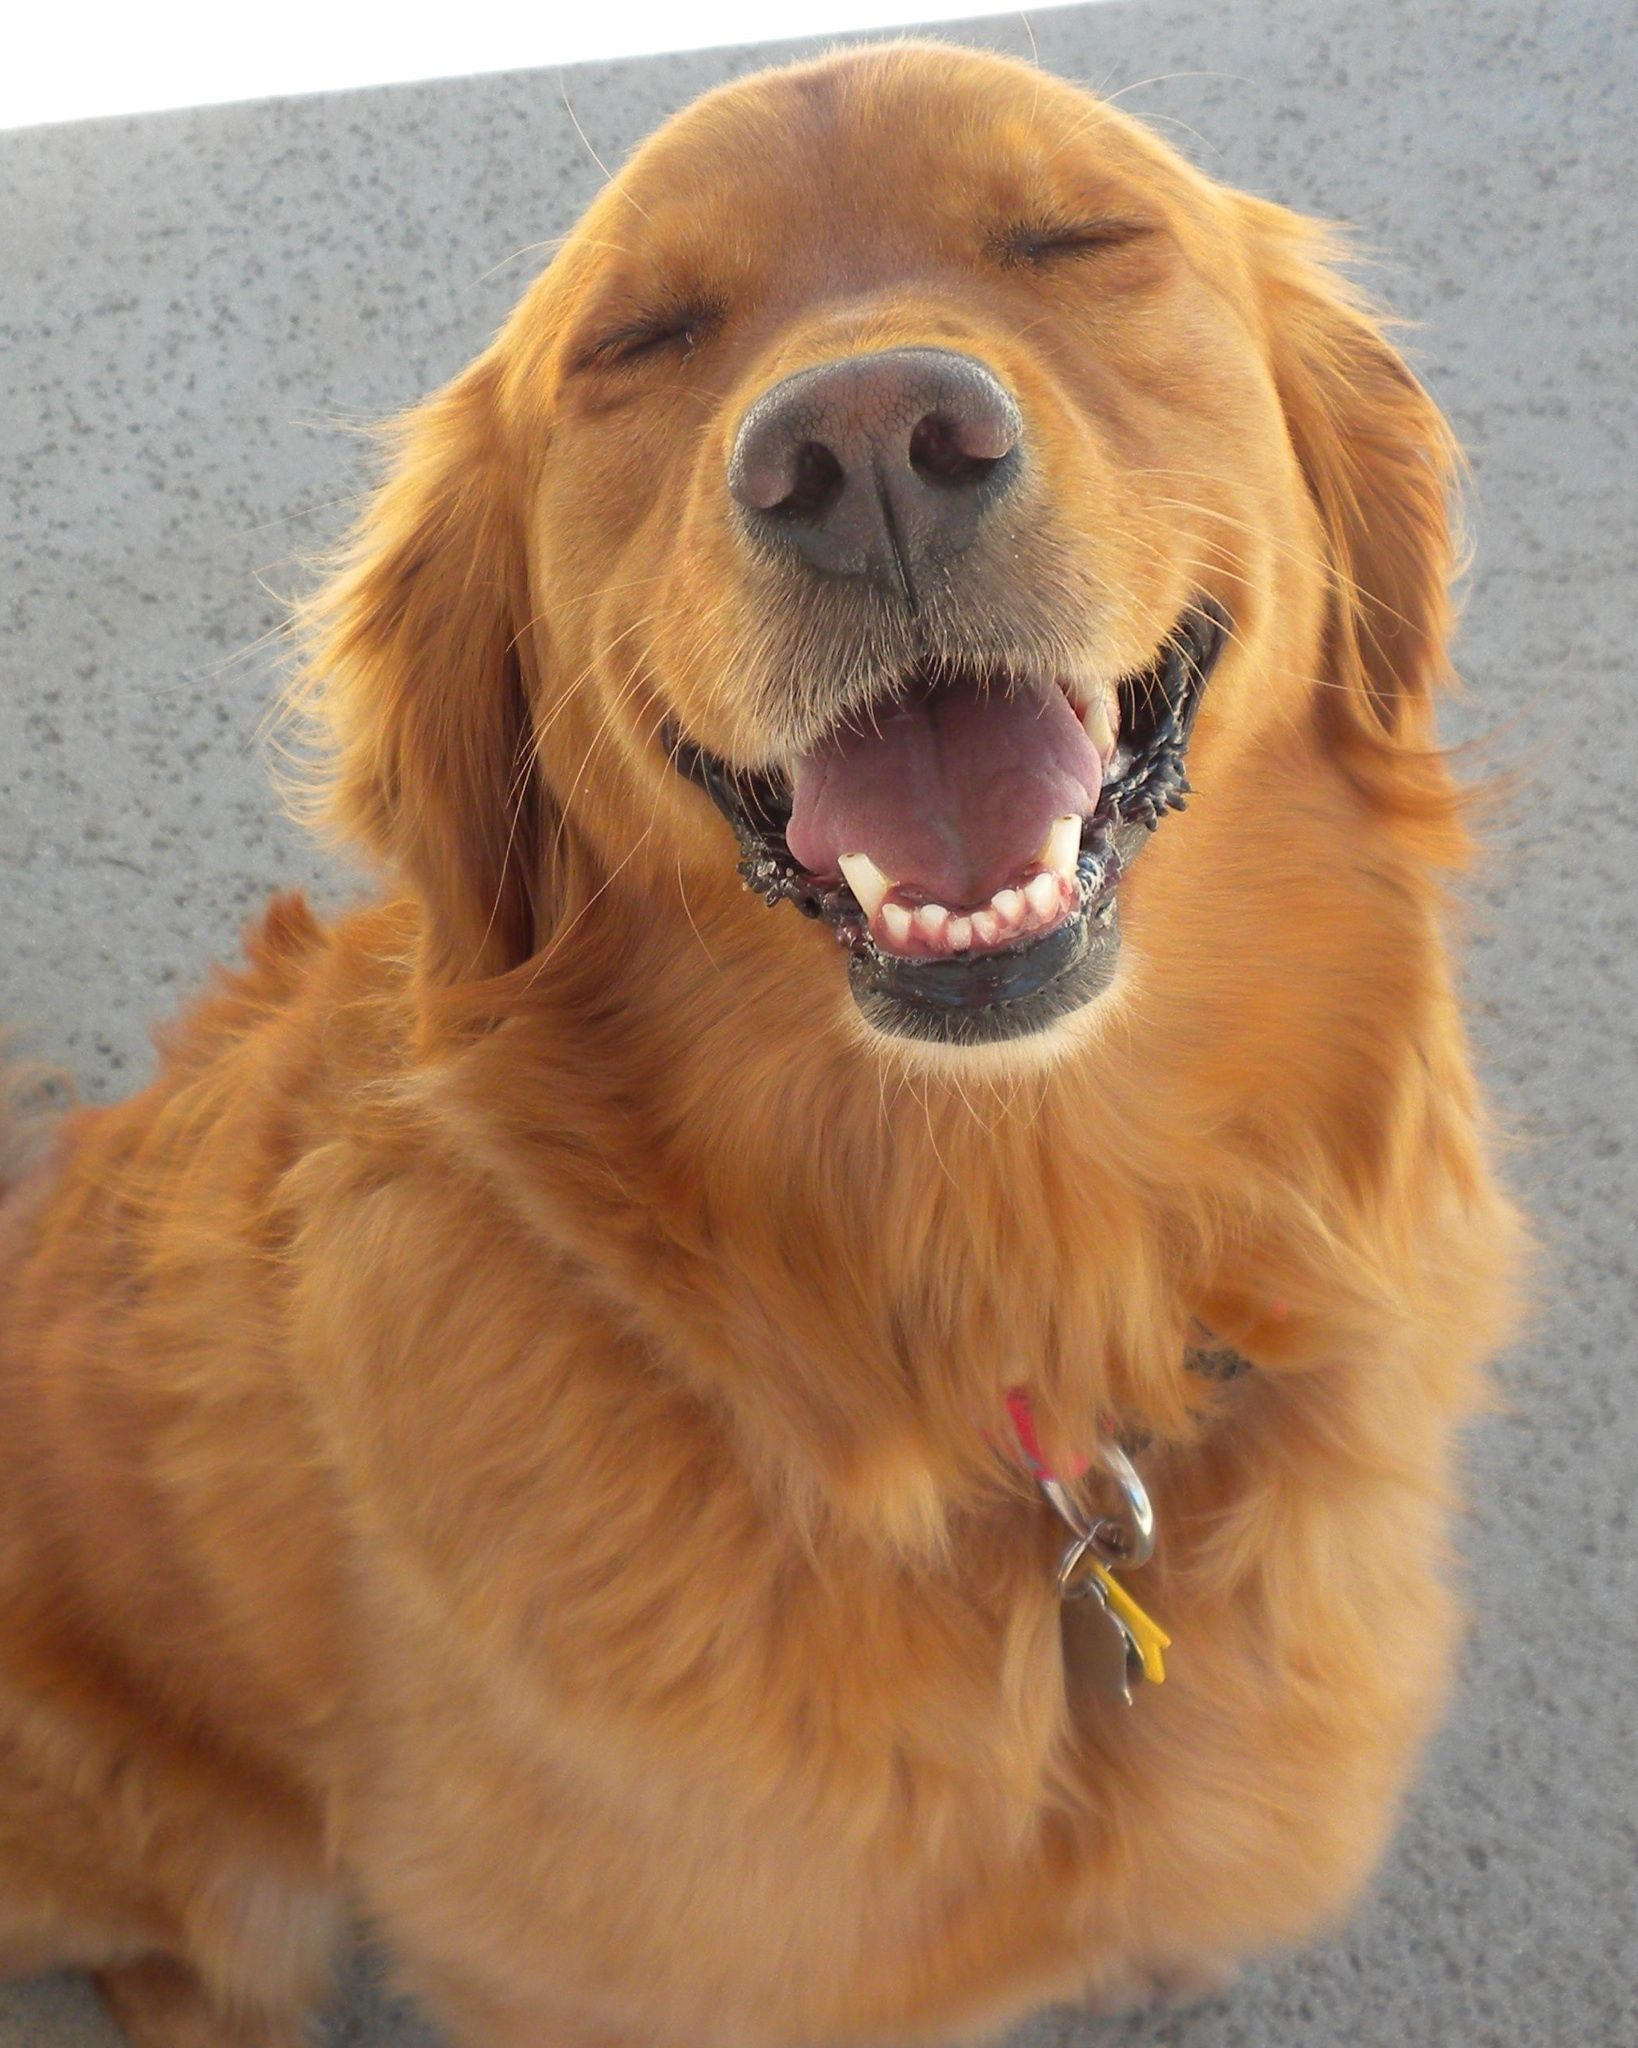 4 Dog Puppy Golden Retriever Dogs Puppies 6 Greeting Notecards Envelopes Set Pets Animals Puppies